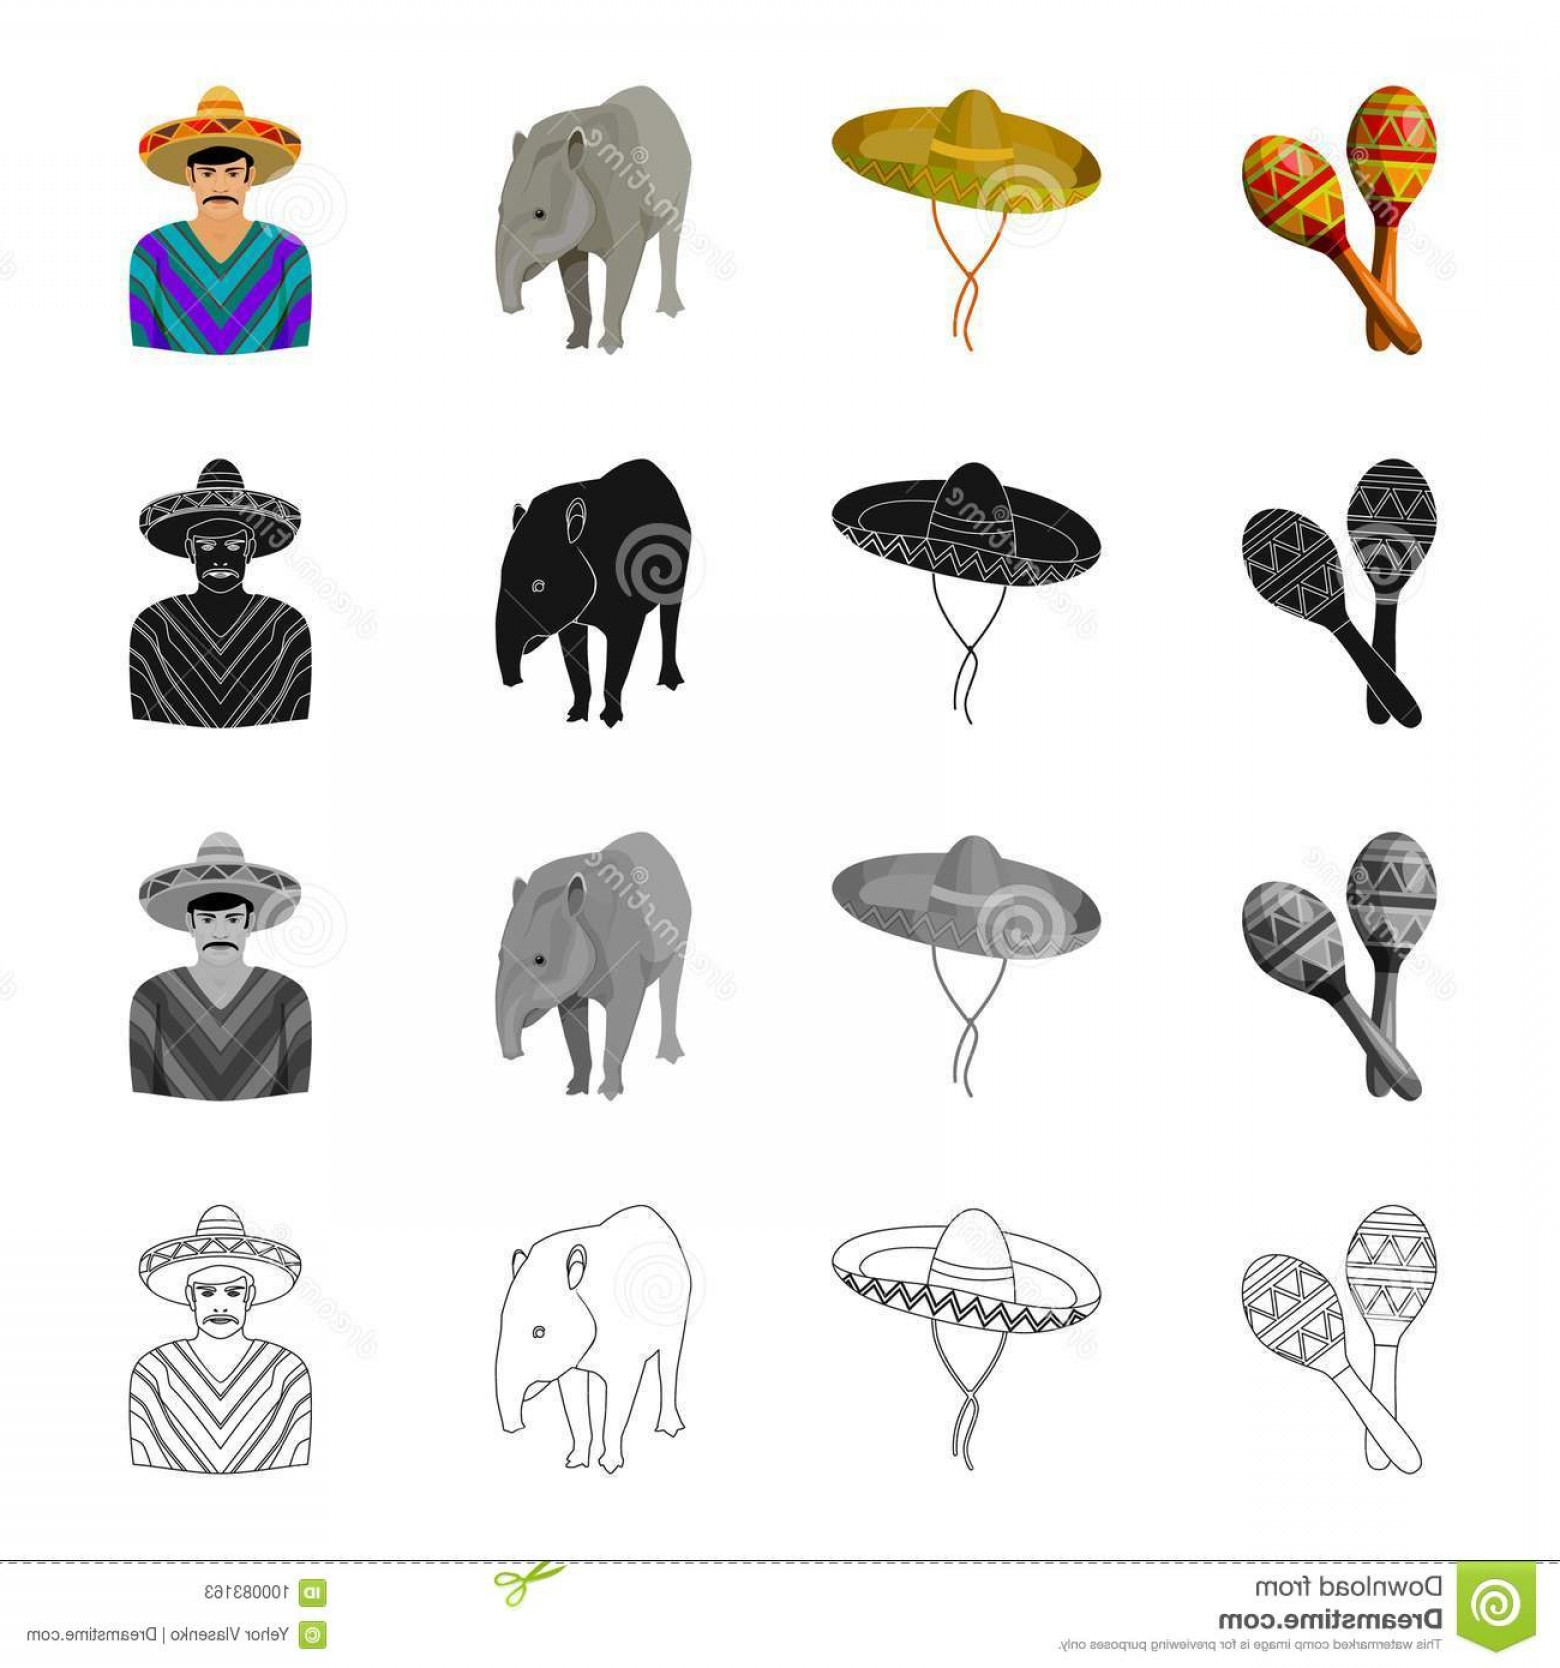 Sombrero Vector Outline: Maracas Sombrero Tapir Mexican Country Mexico Set Collection Icons Cartoon Black Monochrome Outline Style Vector Maracas Image